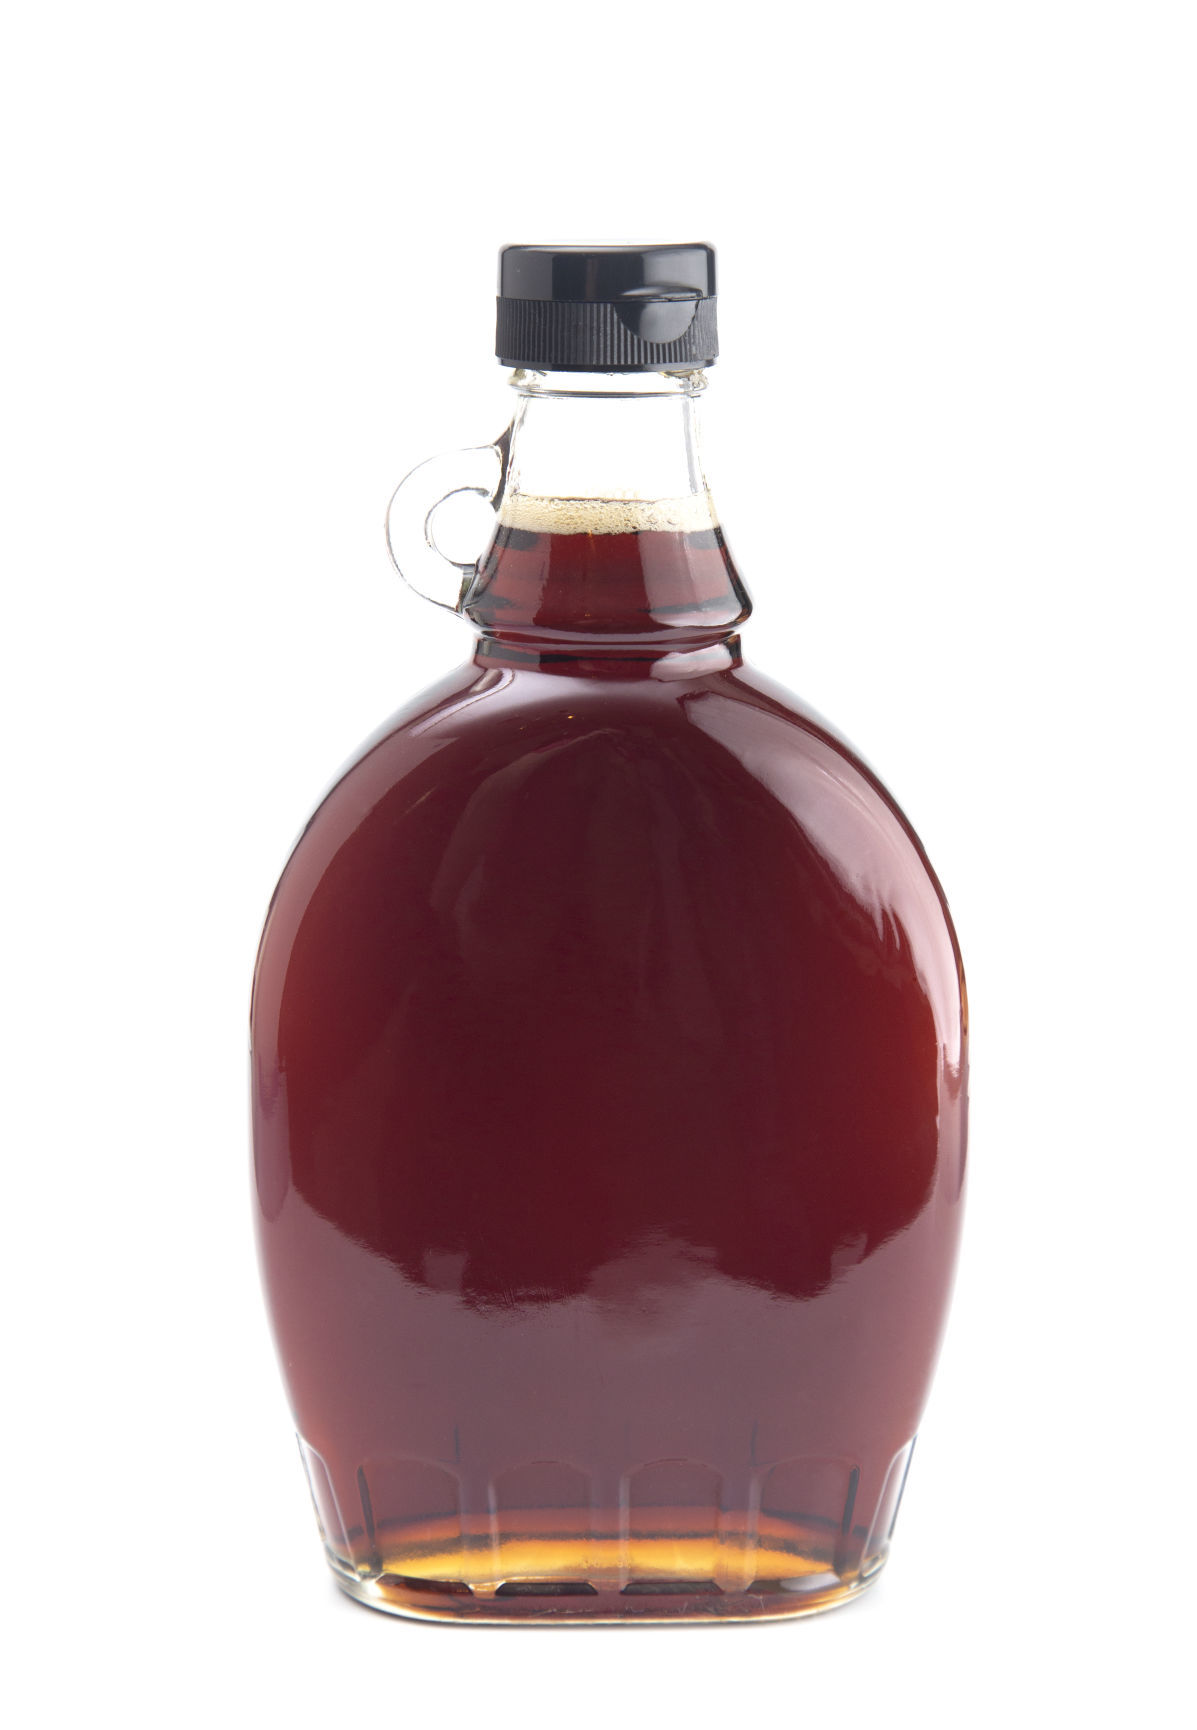 Bottle of Pure Maple Syrup on a White Background